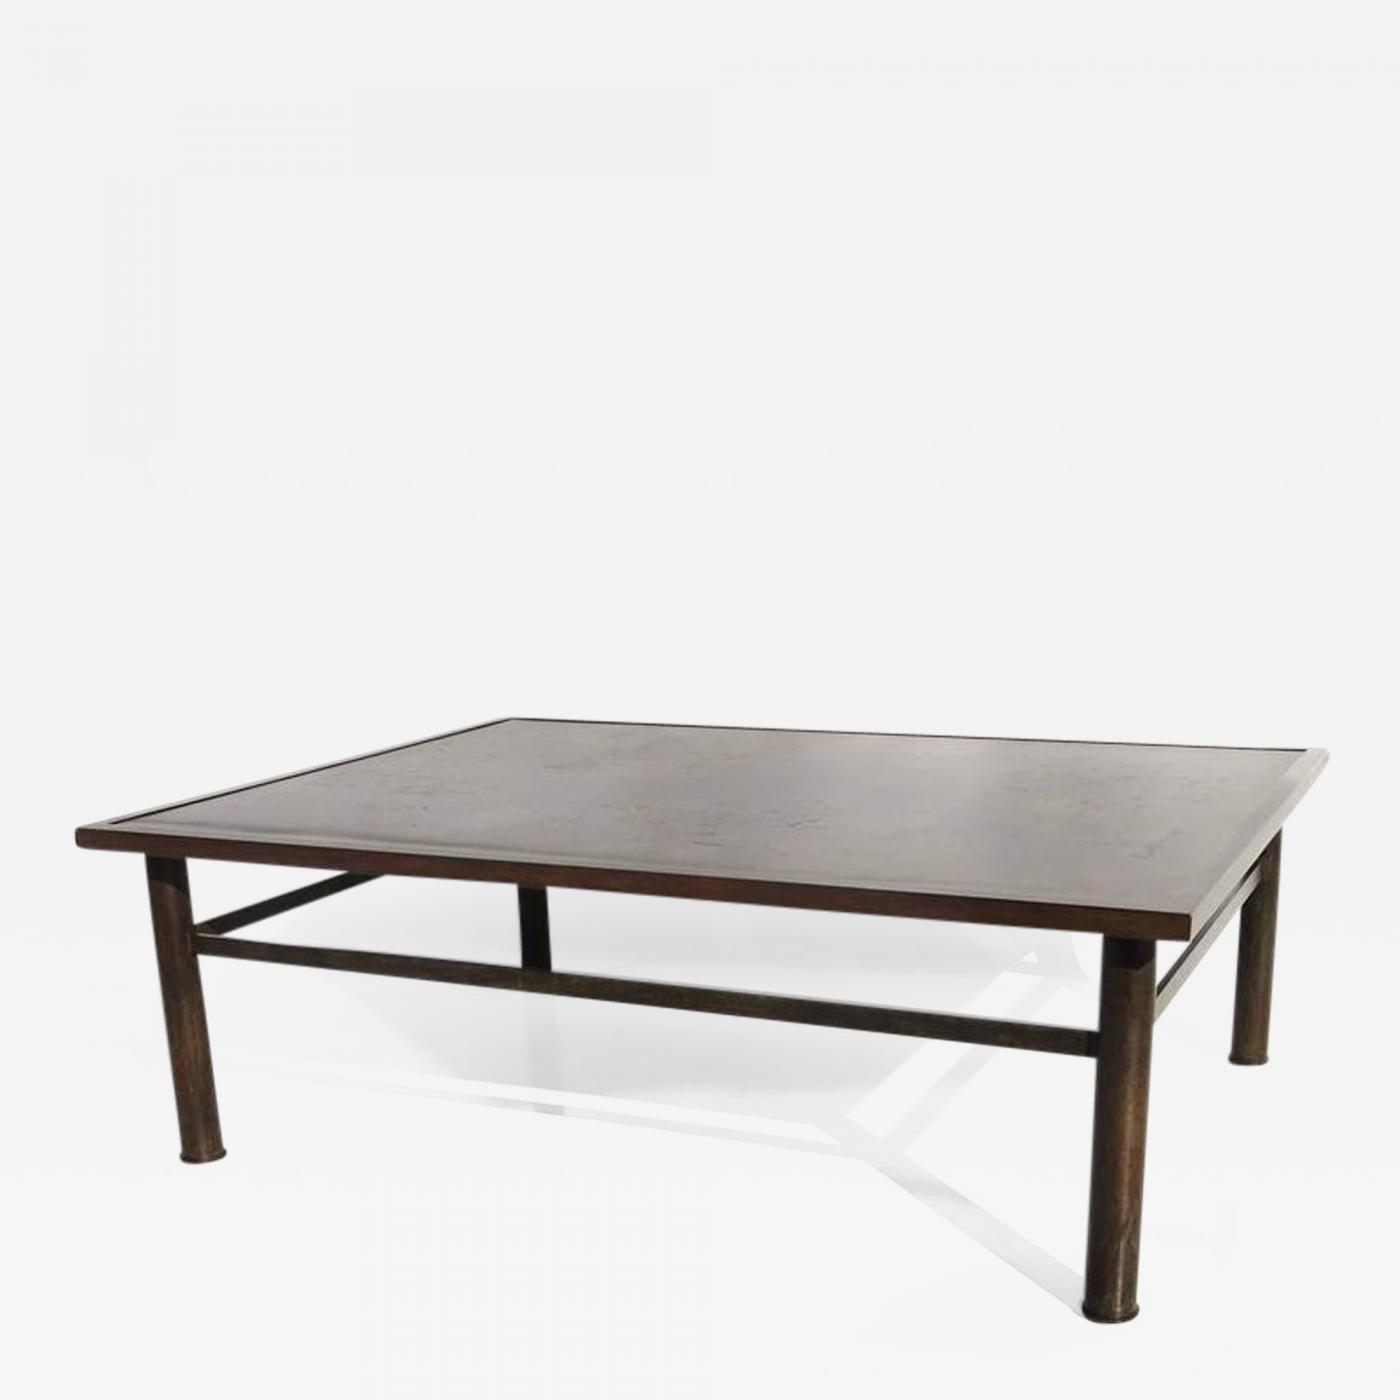 Philip laverne zodiac bronze coffee table by philip laverne listings furniture tables coffee tables geotapseo Image collections